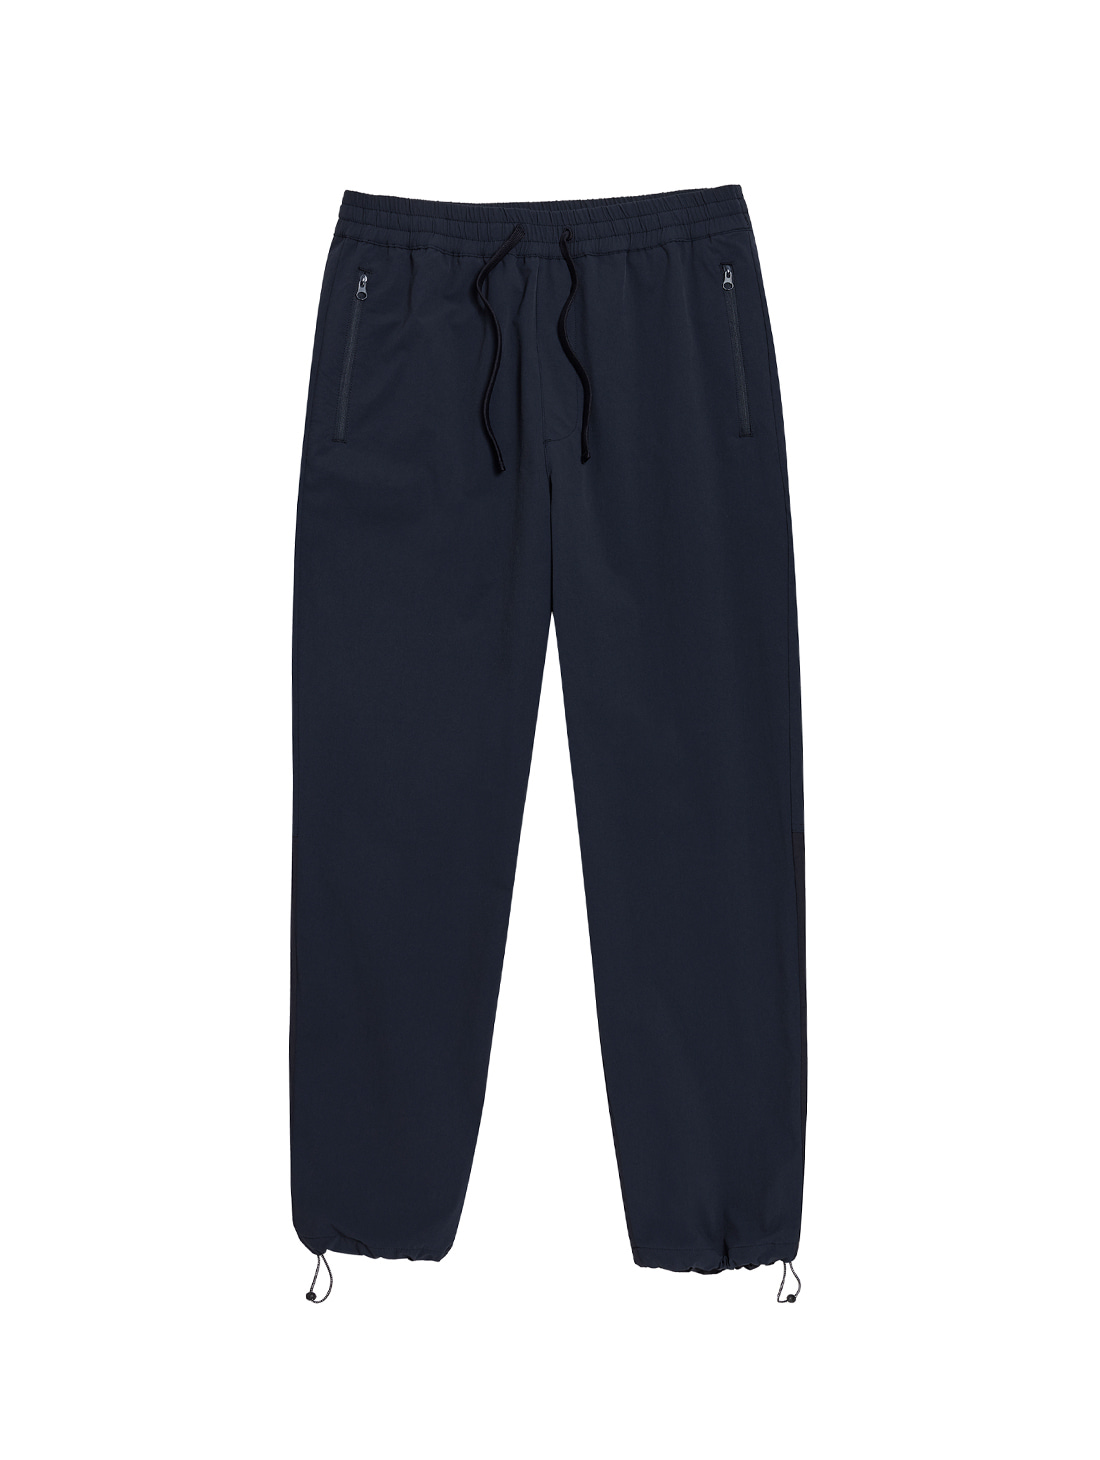 DRAW STRING PANTS - NAVY